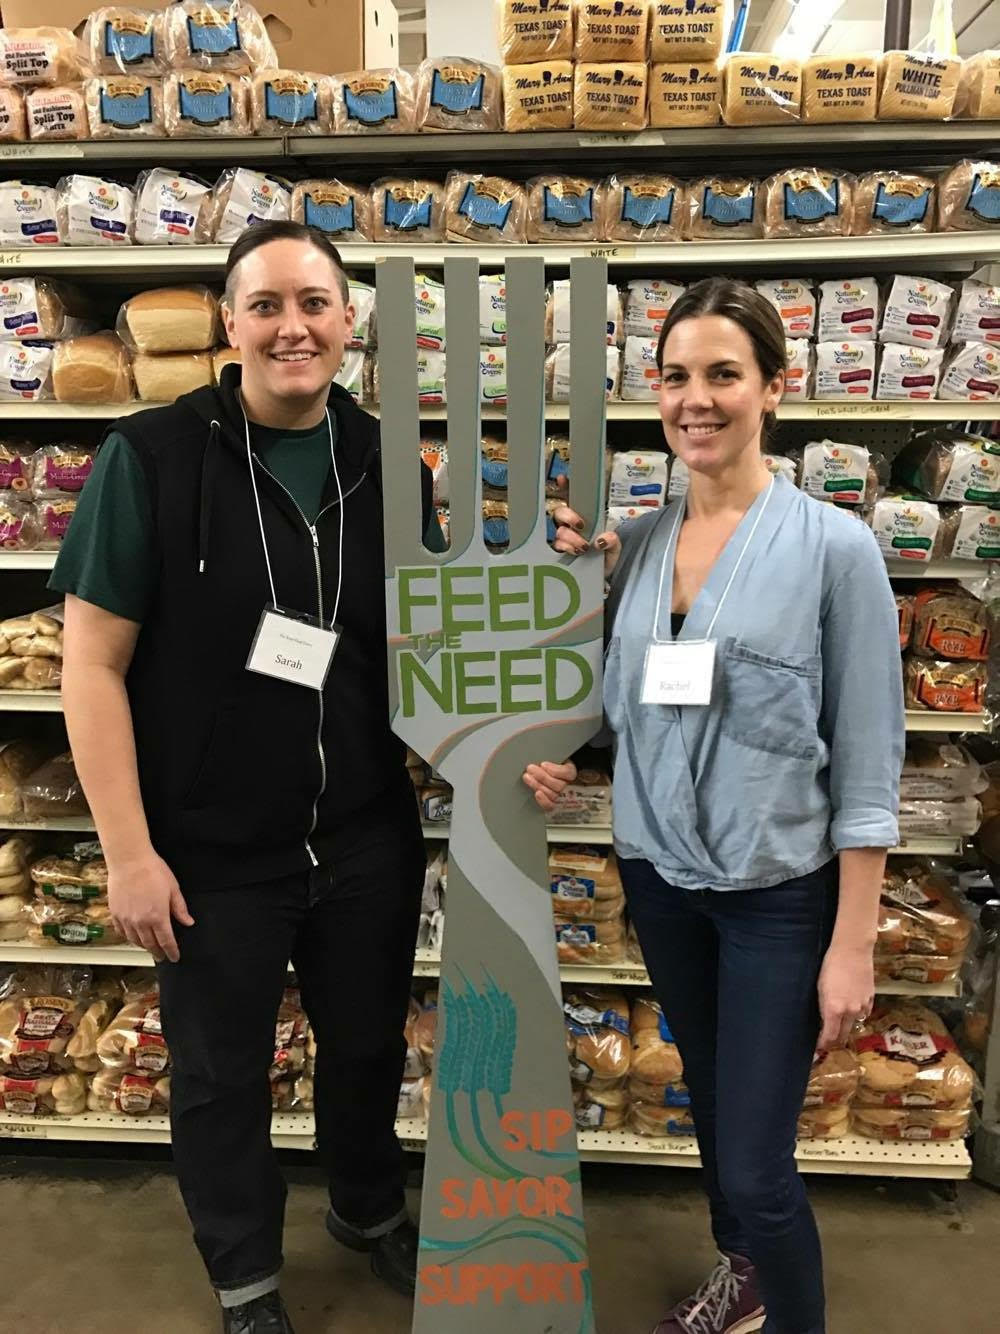 Dotty dumpling's dowry volunteers at the river food pantry